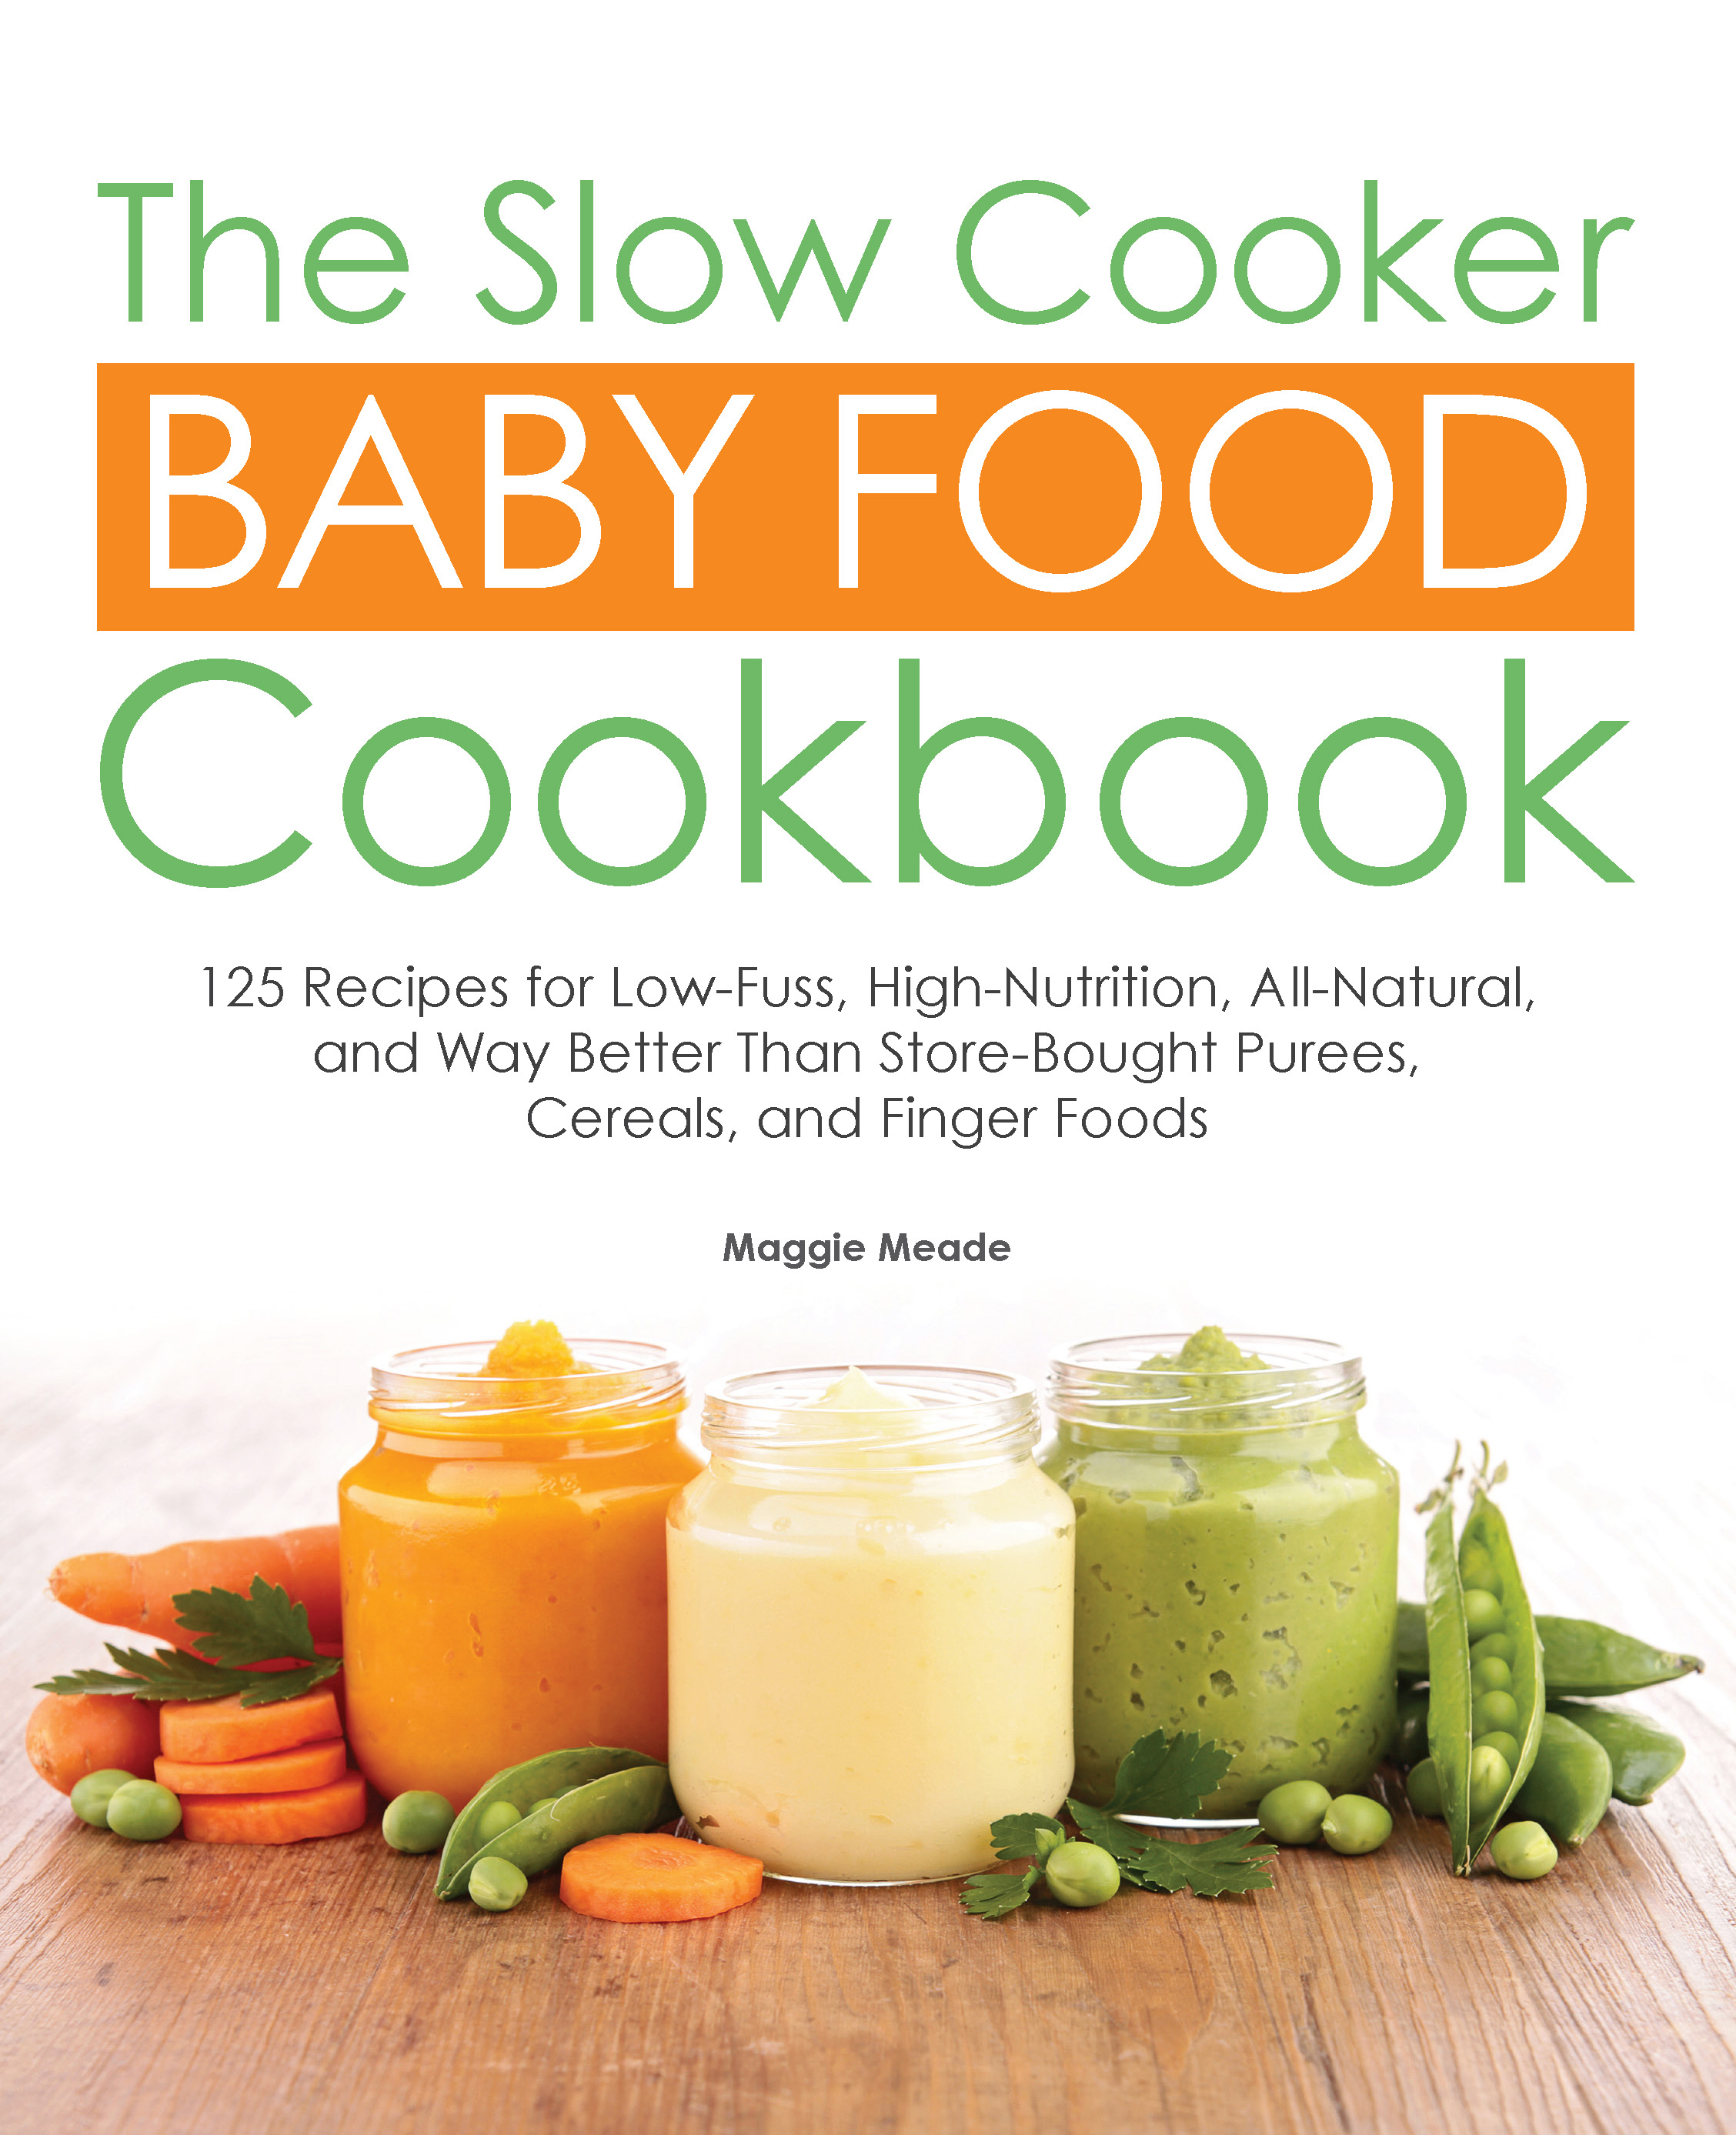 The slow cooker baby food cookbook maggie meade 9781558329089 download cover forumfinder Image collections